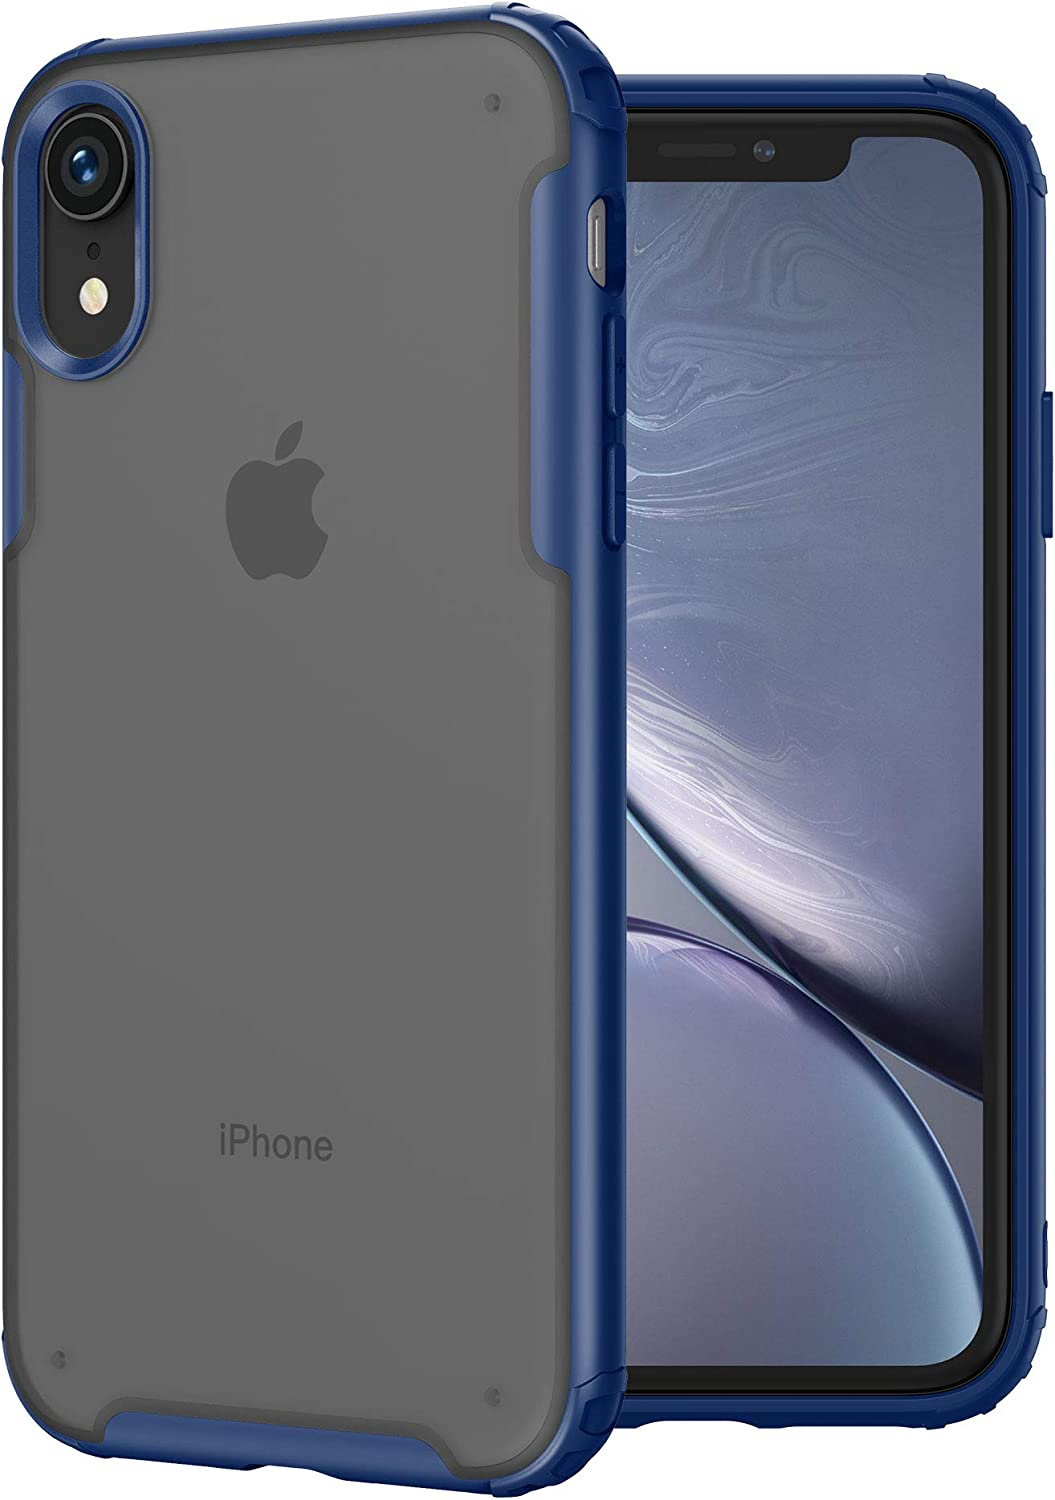 MRYUESG Compatible with iPhone XR Case, [Military Grade Drop Tested] Translucent Matte Hard PC Back with Soft Silicone Edges, Shock-Proof Bumper, Heavy Duty Protective, Slim Thin Cover, Blue